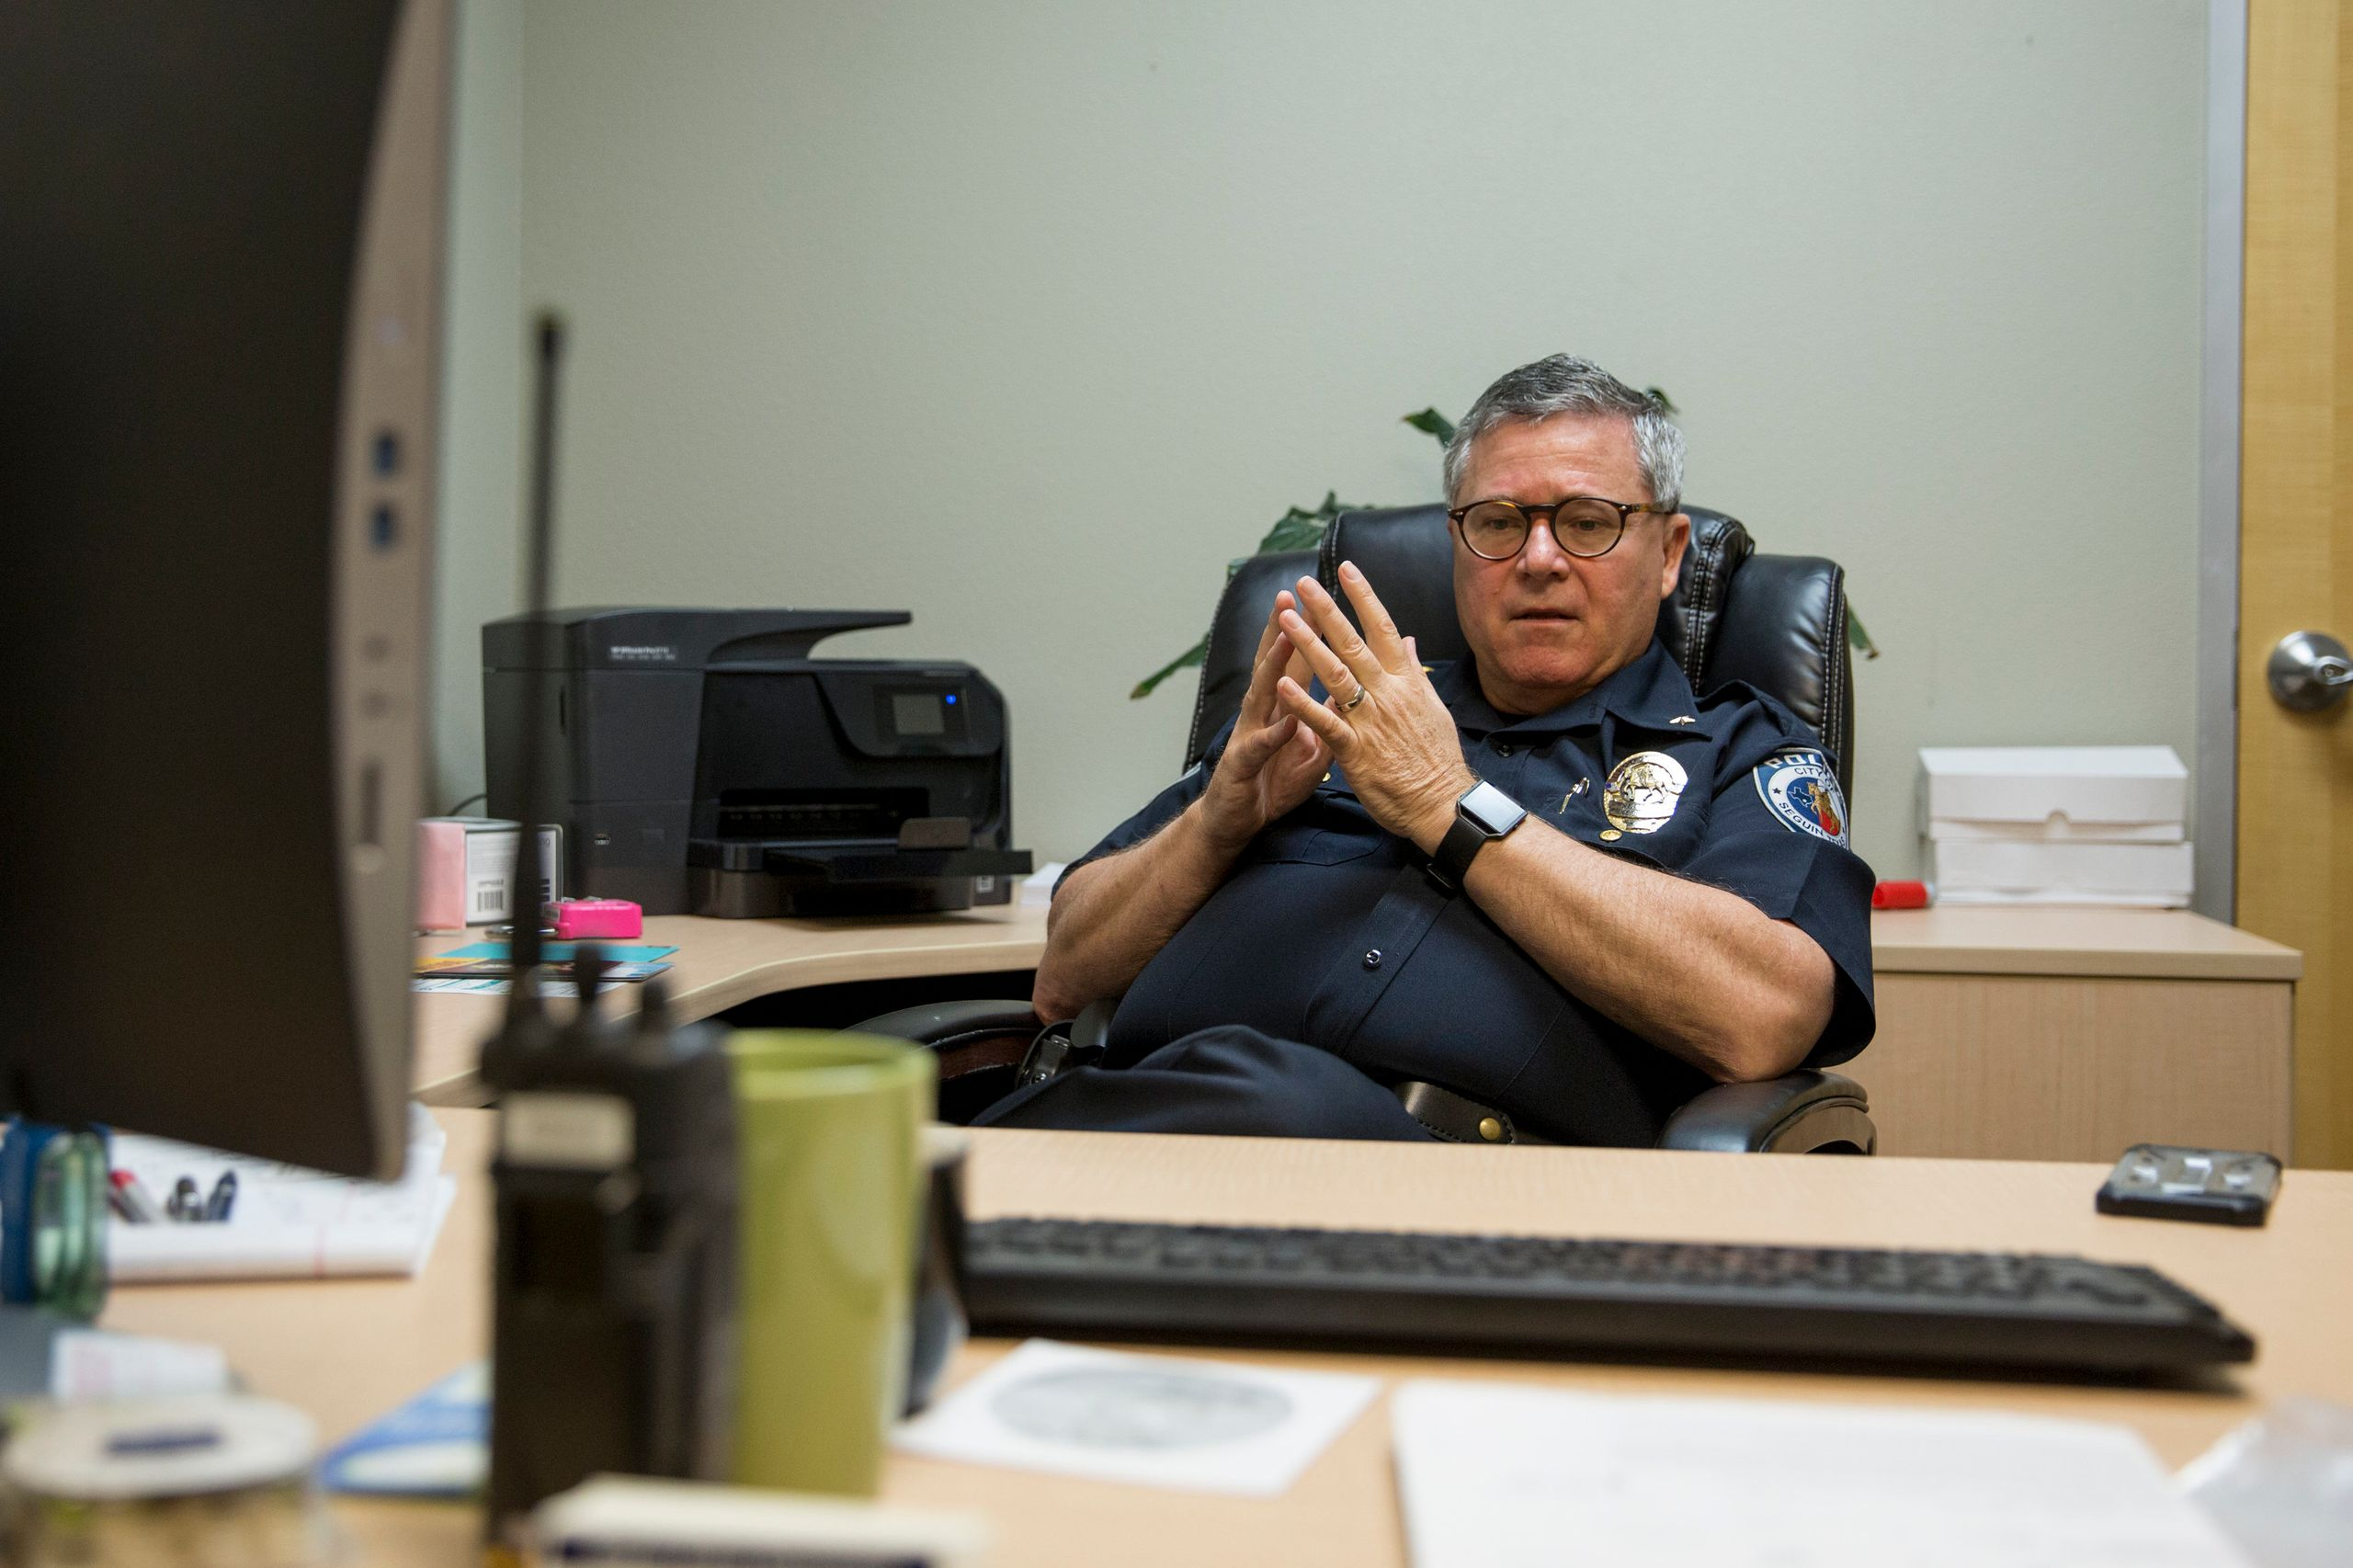 Bruce Ure back at his desk as deputy chief of the police department in Seguin, Texas.